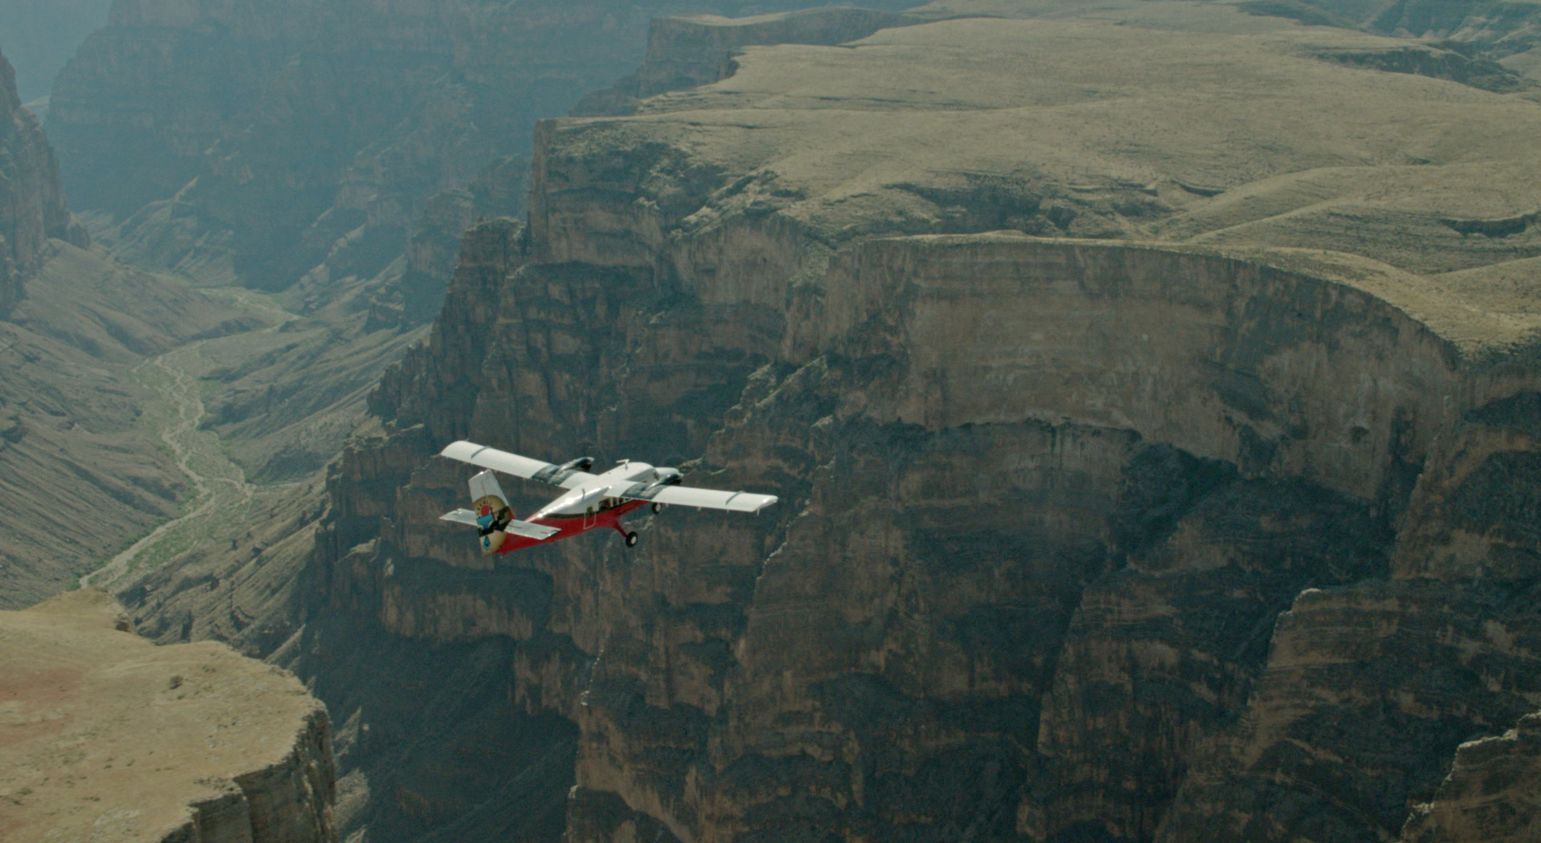 A red and white helicopter flies over a huge stone gorge within the Grand Canyon West.